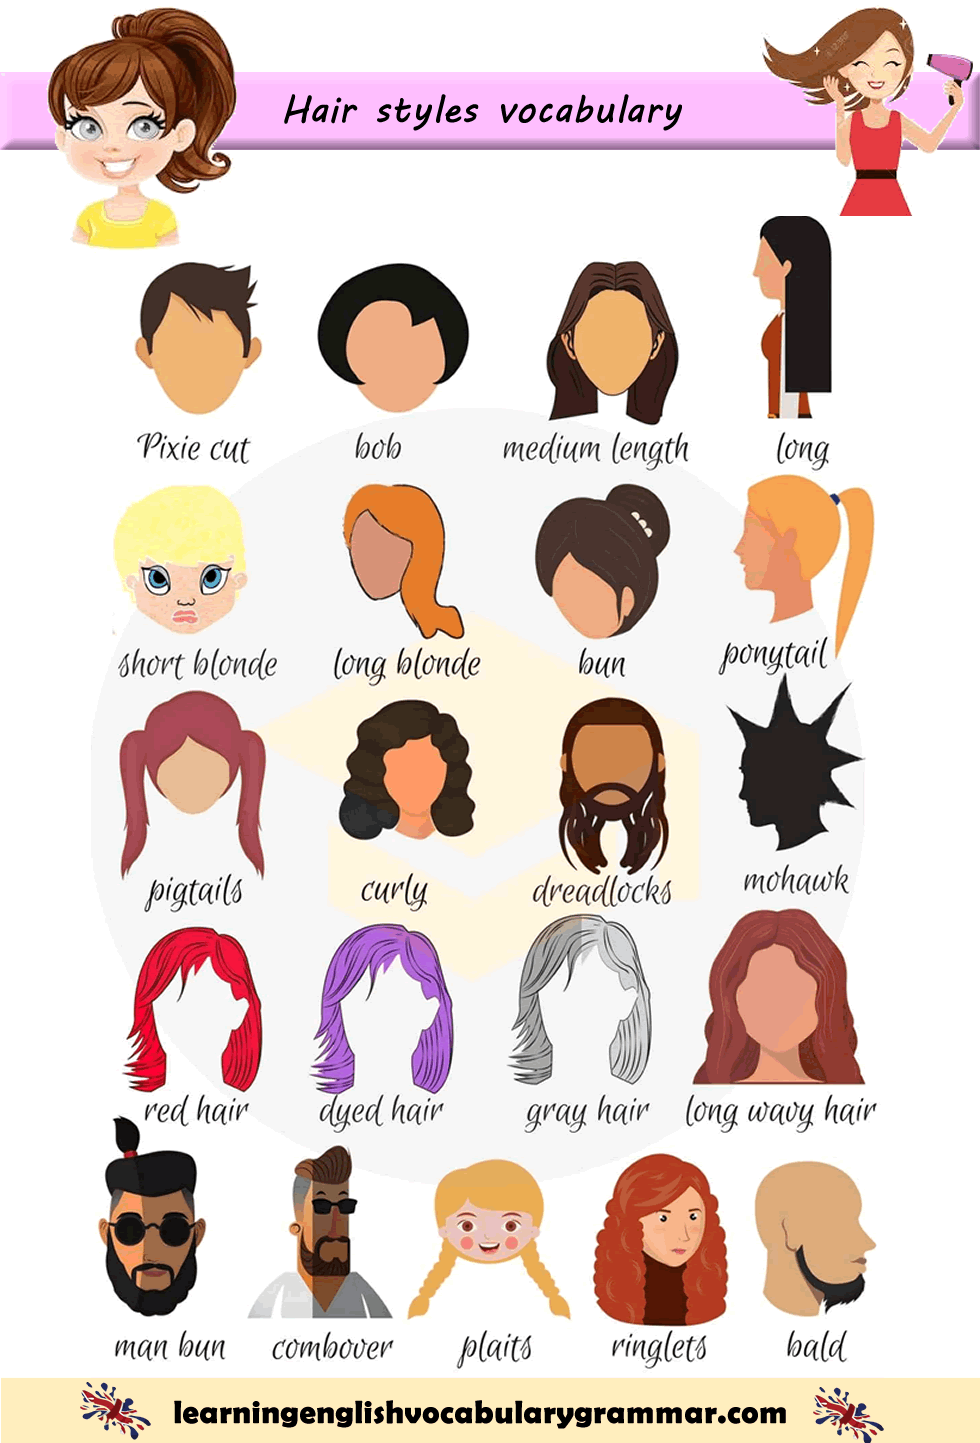 Hair Styles For Males And Females Vocabulary English Vocabulary English Language Learning English Vocab